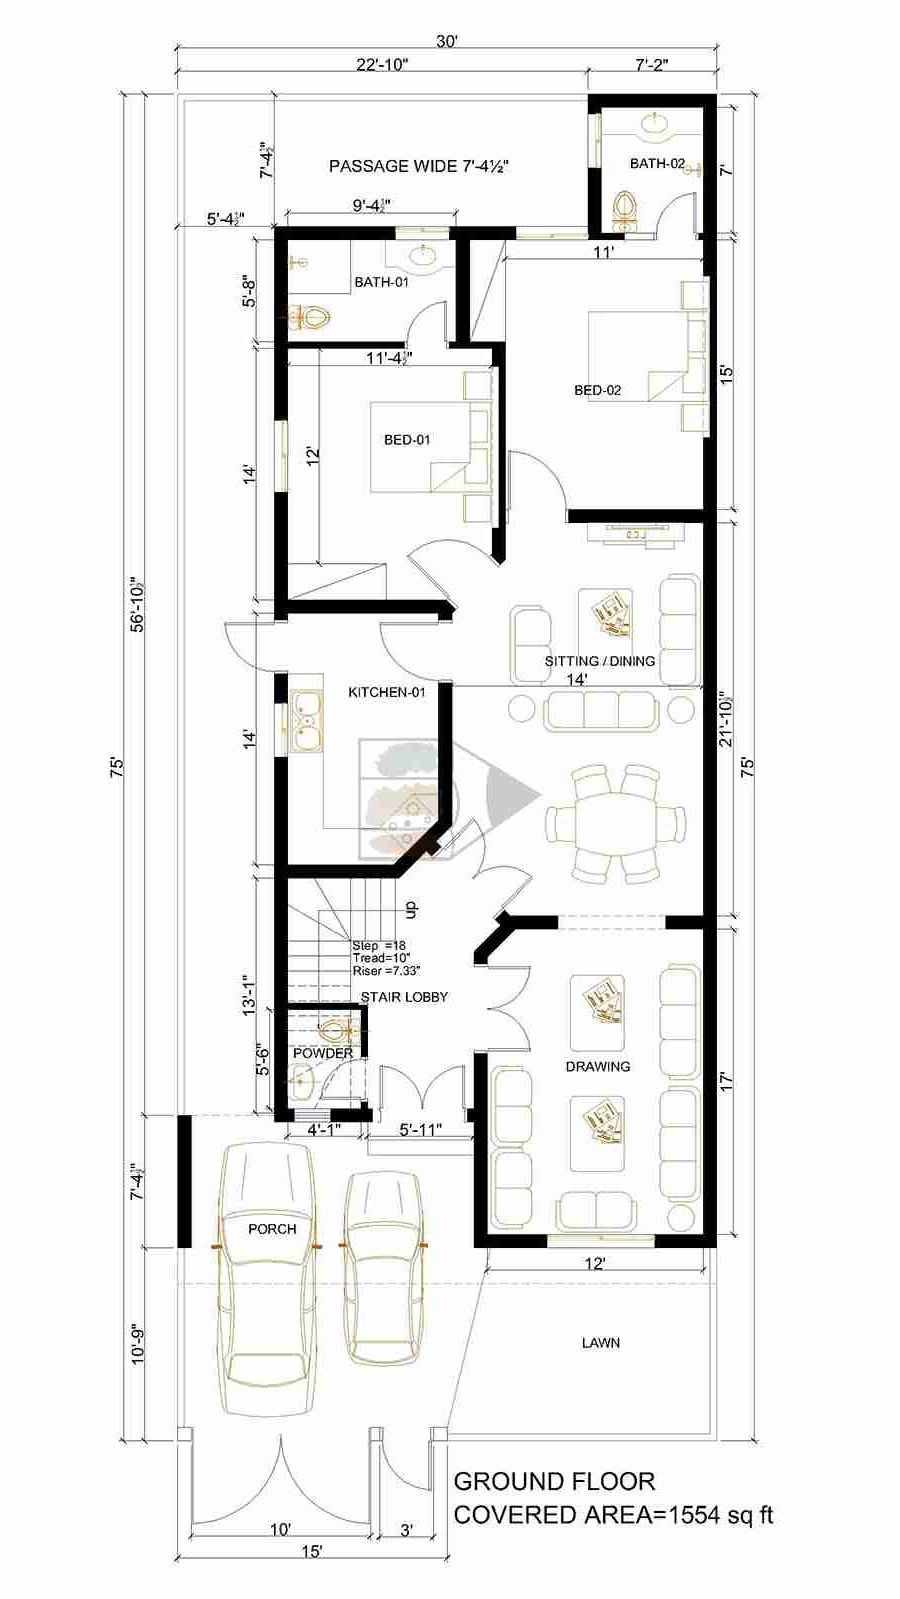 Pin By Sh Naveed On Floor Plans Pakistan 10 Marla House Plan My House Plans Modern House Design